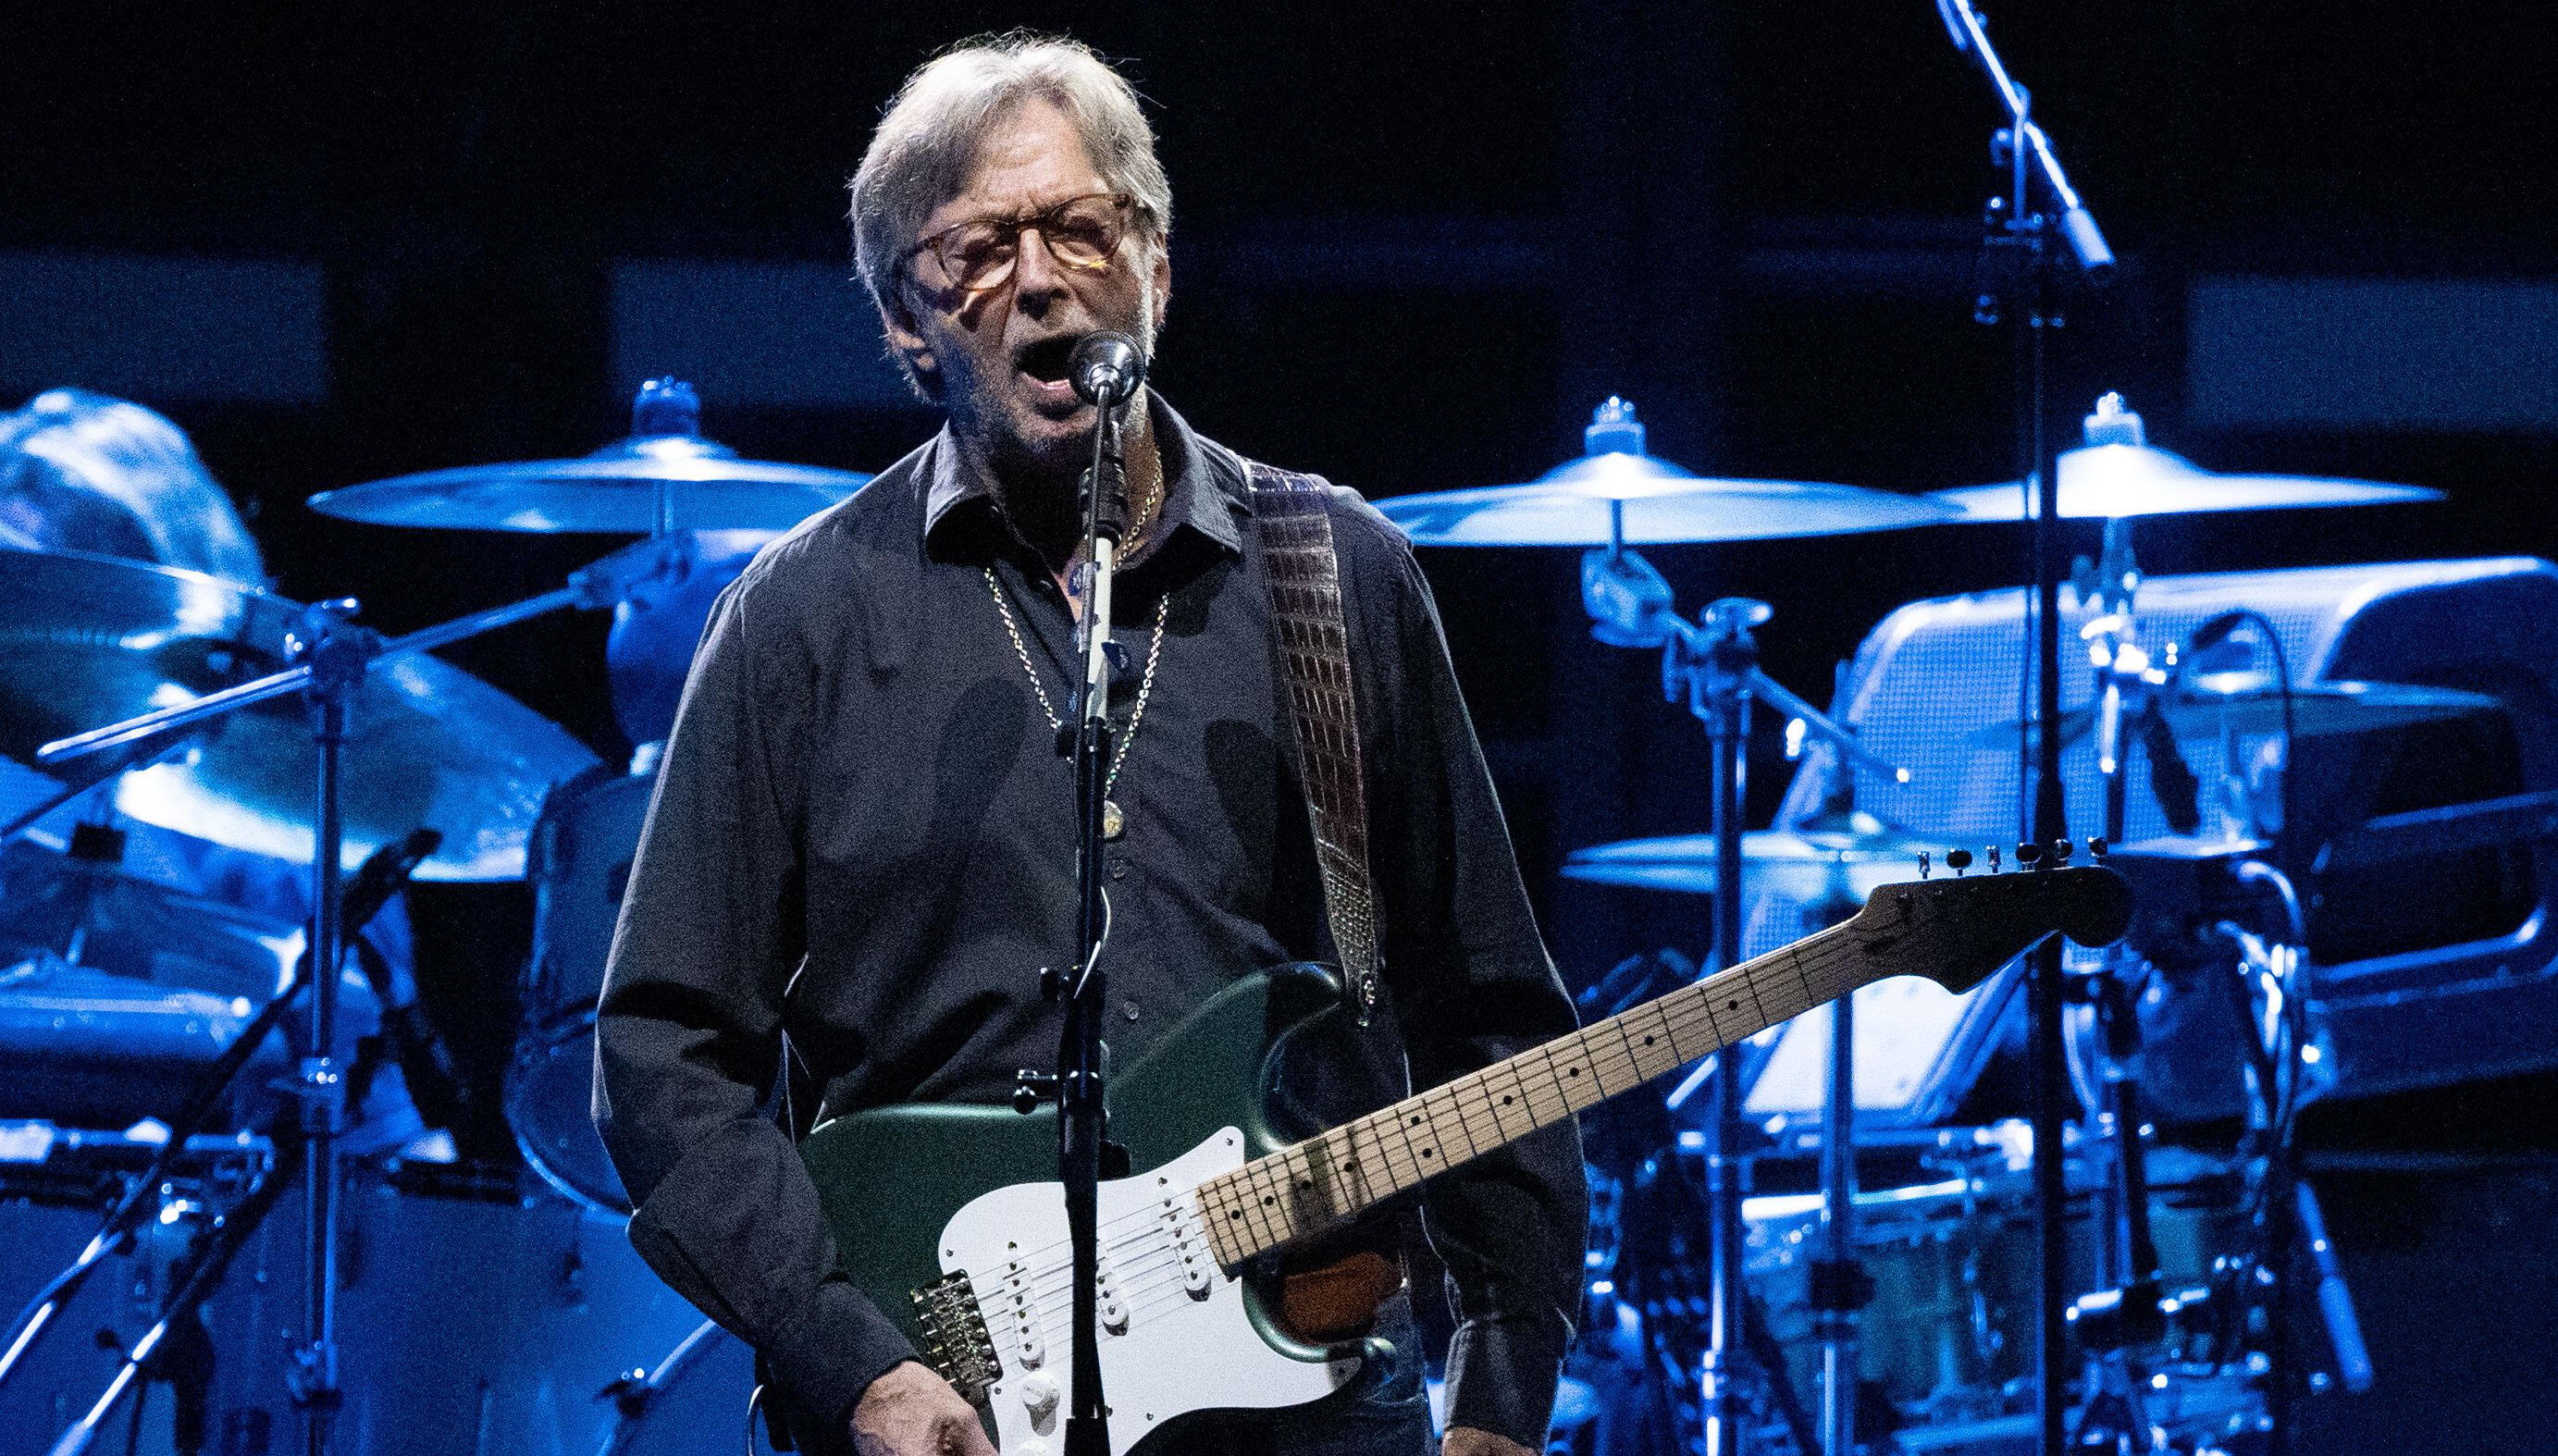 Eric Clapton Says He's Lost Friends Over His COVID Theories